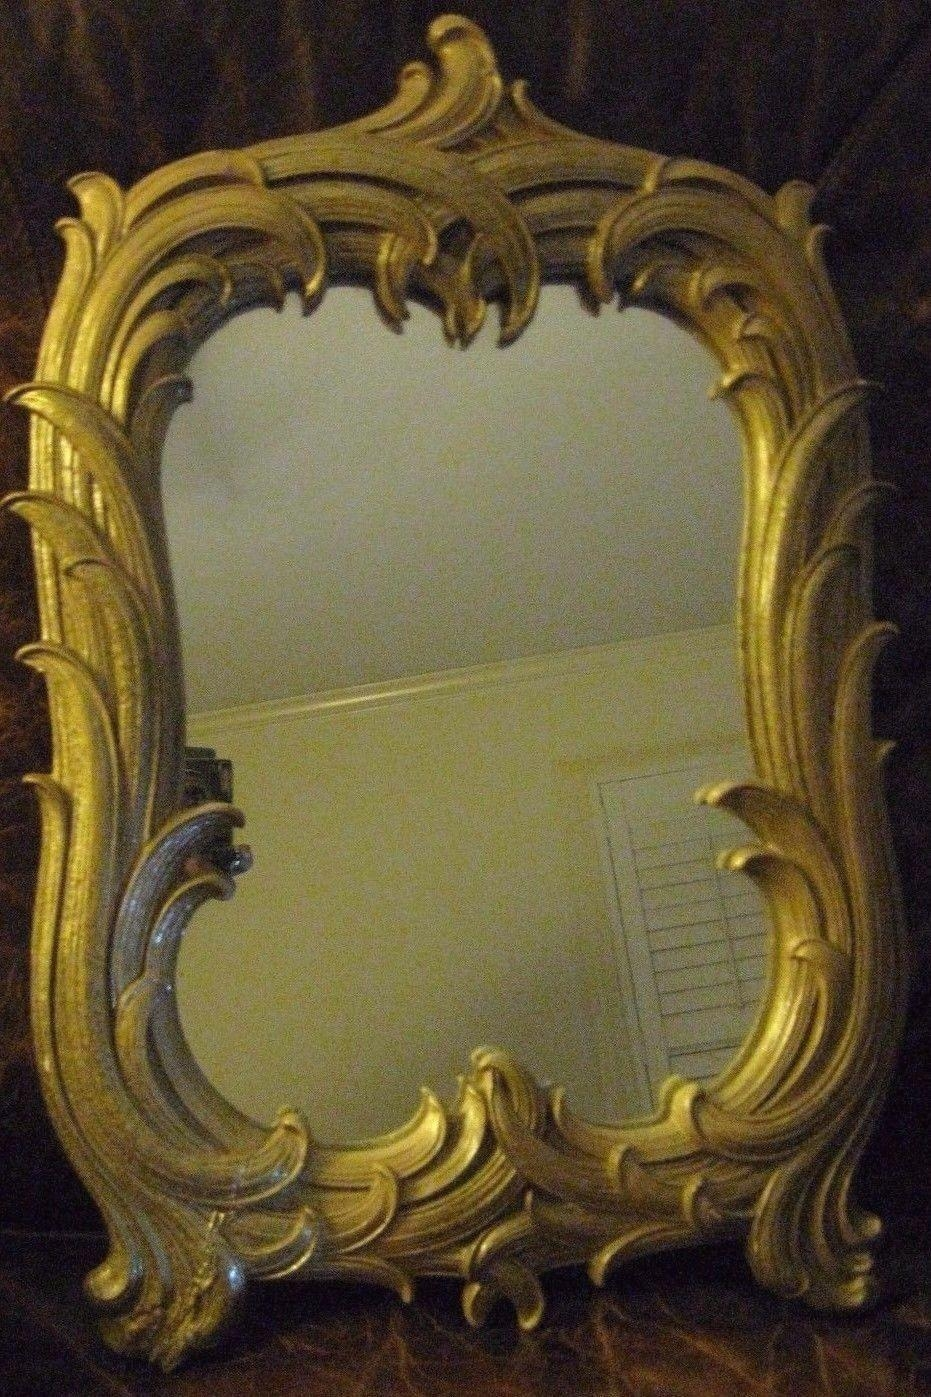 Antique Gilt Mirror With Palm Leaf Frame On Reflection Design With Regard To Antique Gilt Mirror (Image 10 of 20)